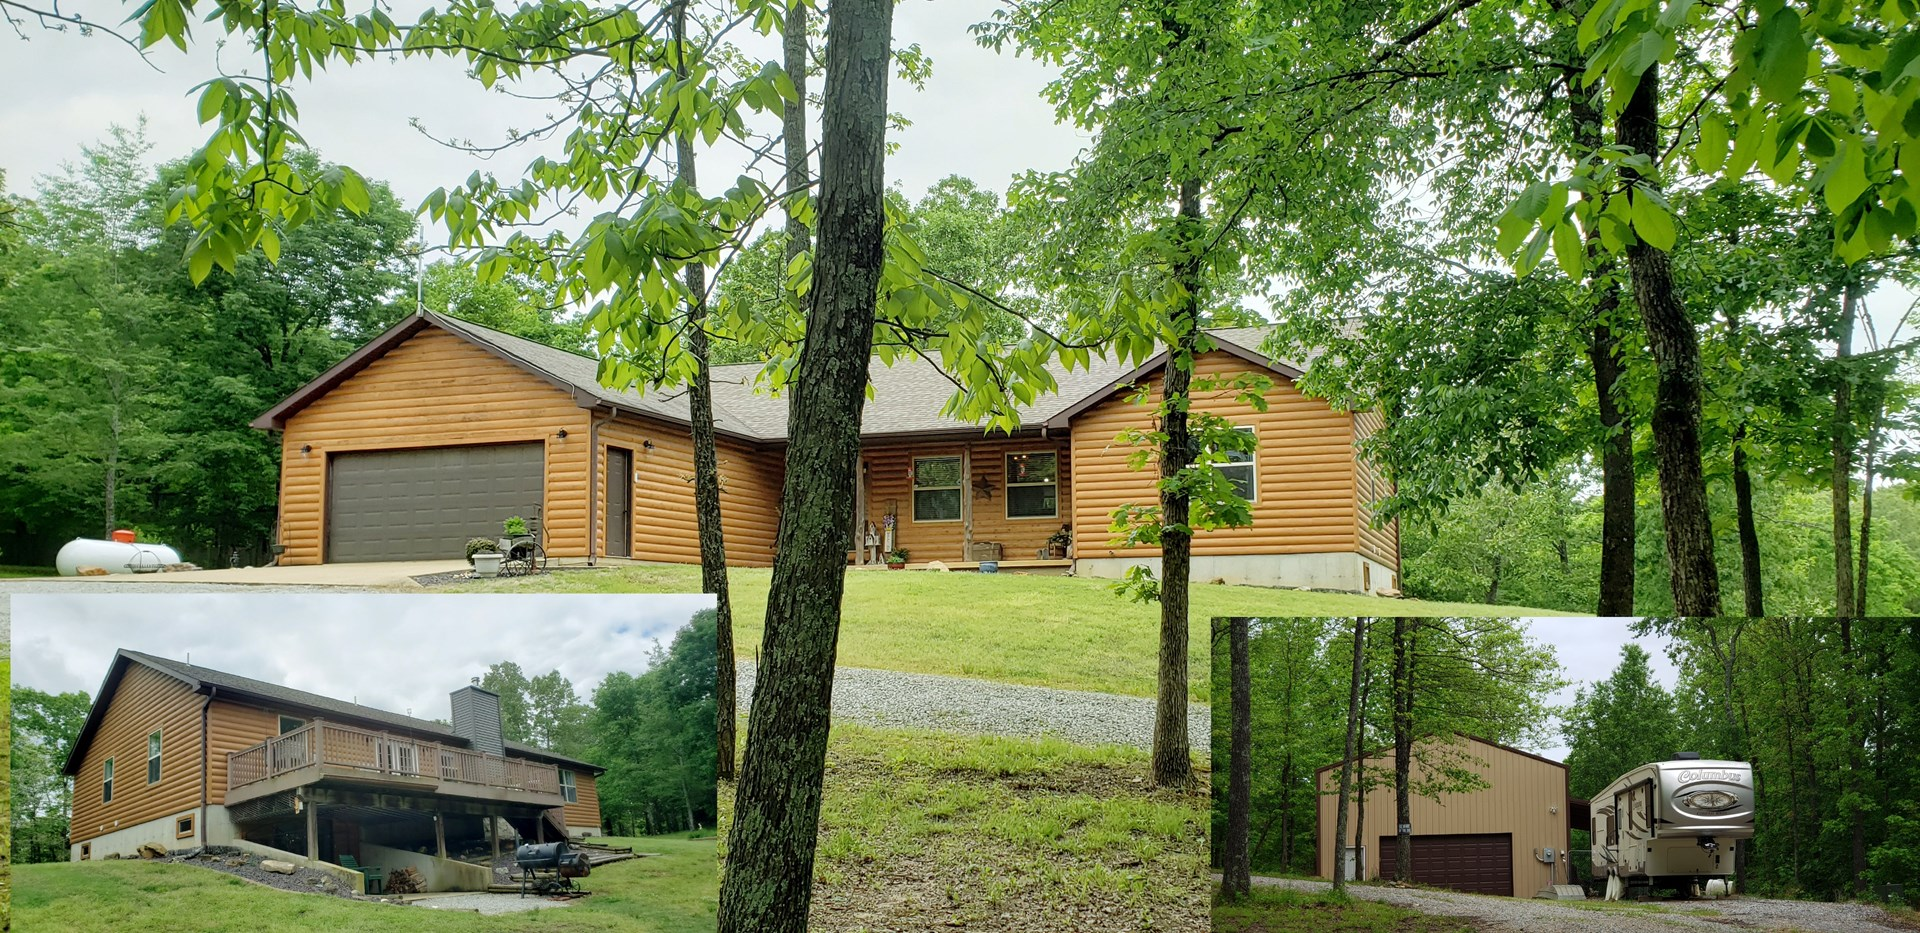 LOG SIDED HOME WITH LARGE SHOP IN MISSOURI FOR SALE